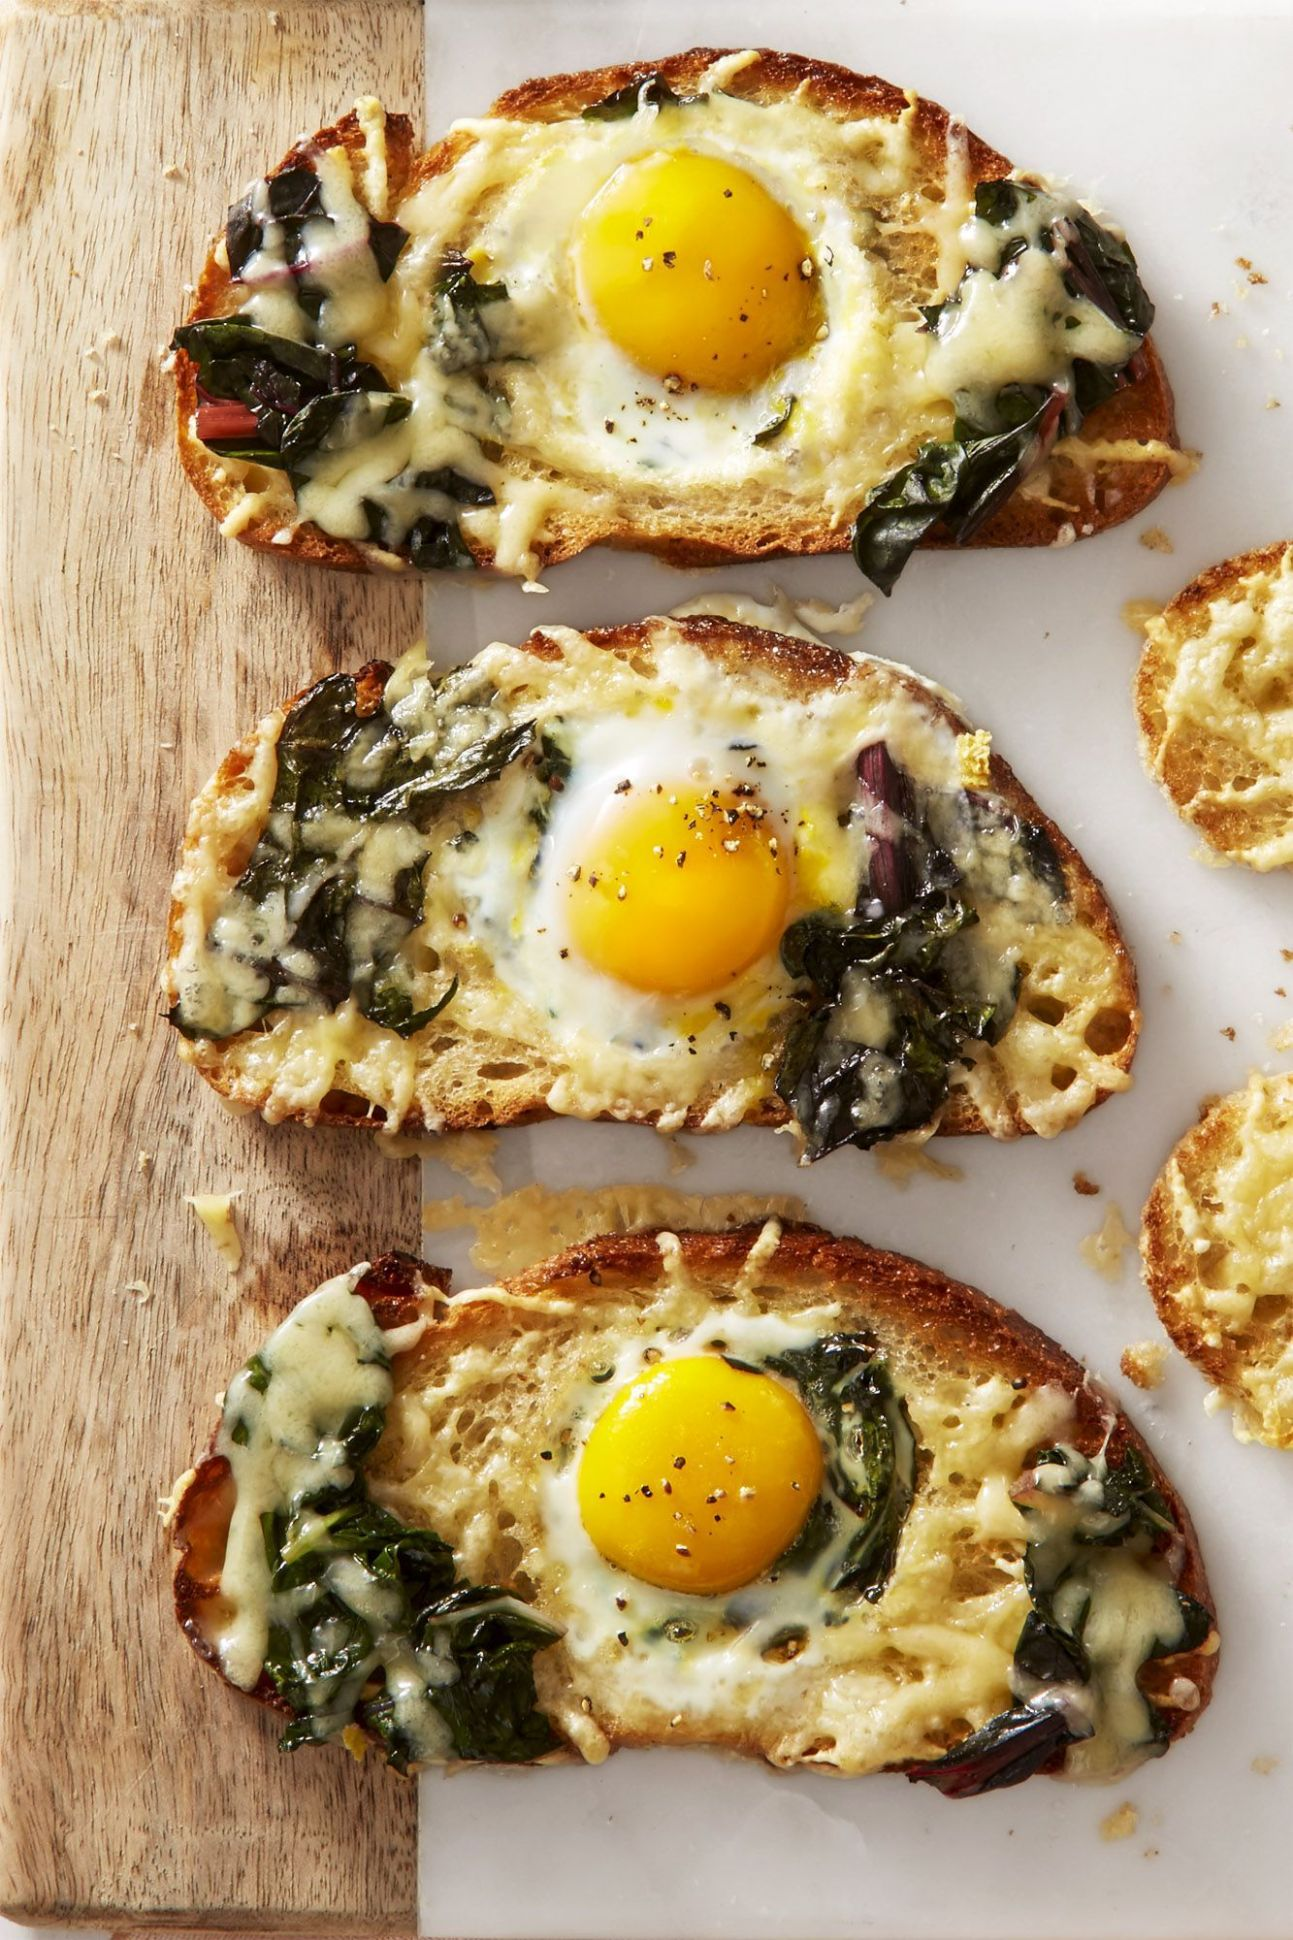 12+ Easy Egg Recipes - Ways to Cook Eggs for Breakfast - Breakfast Recipes You Could Make With Eggs